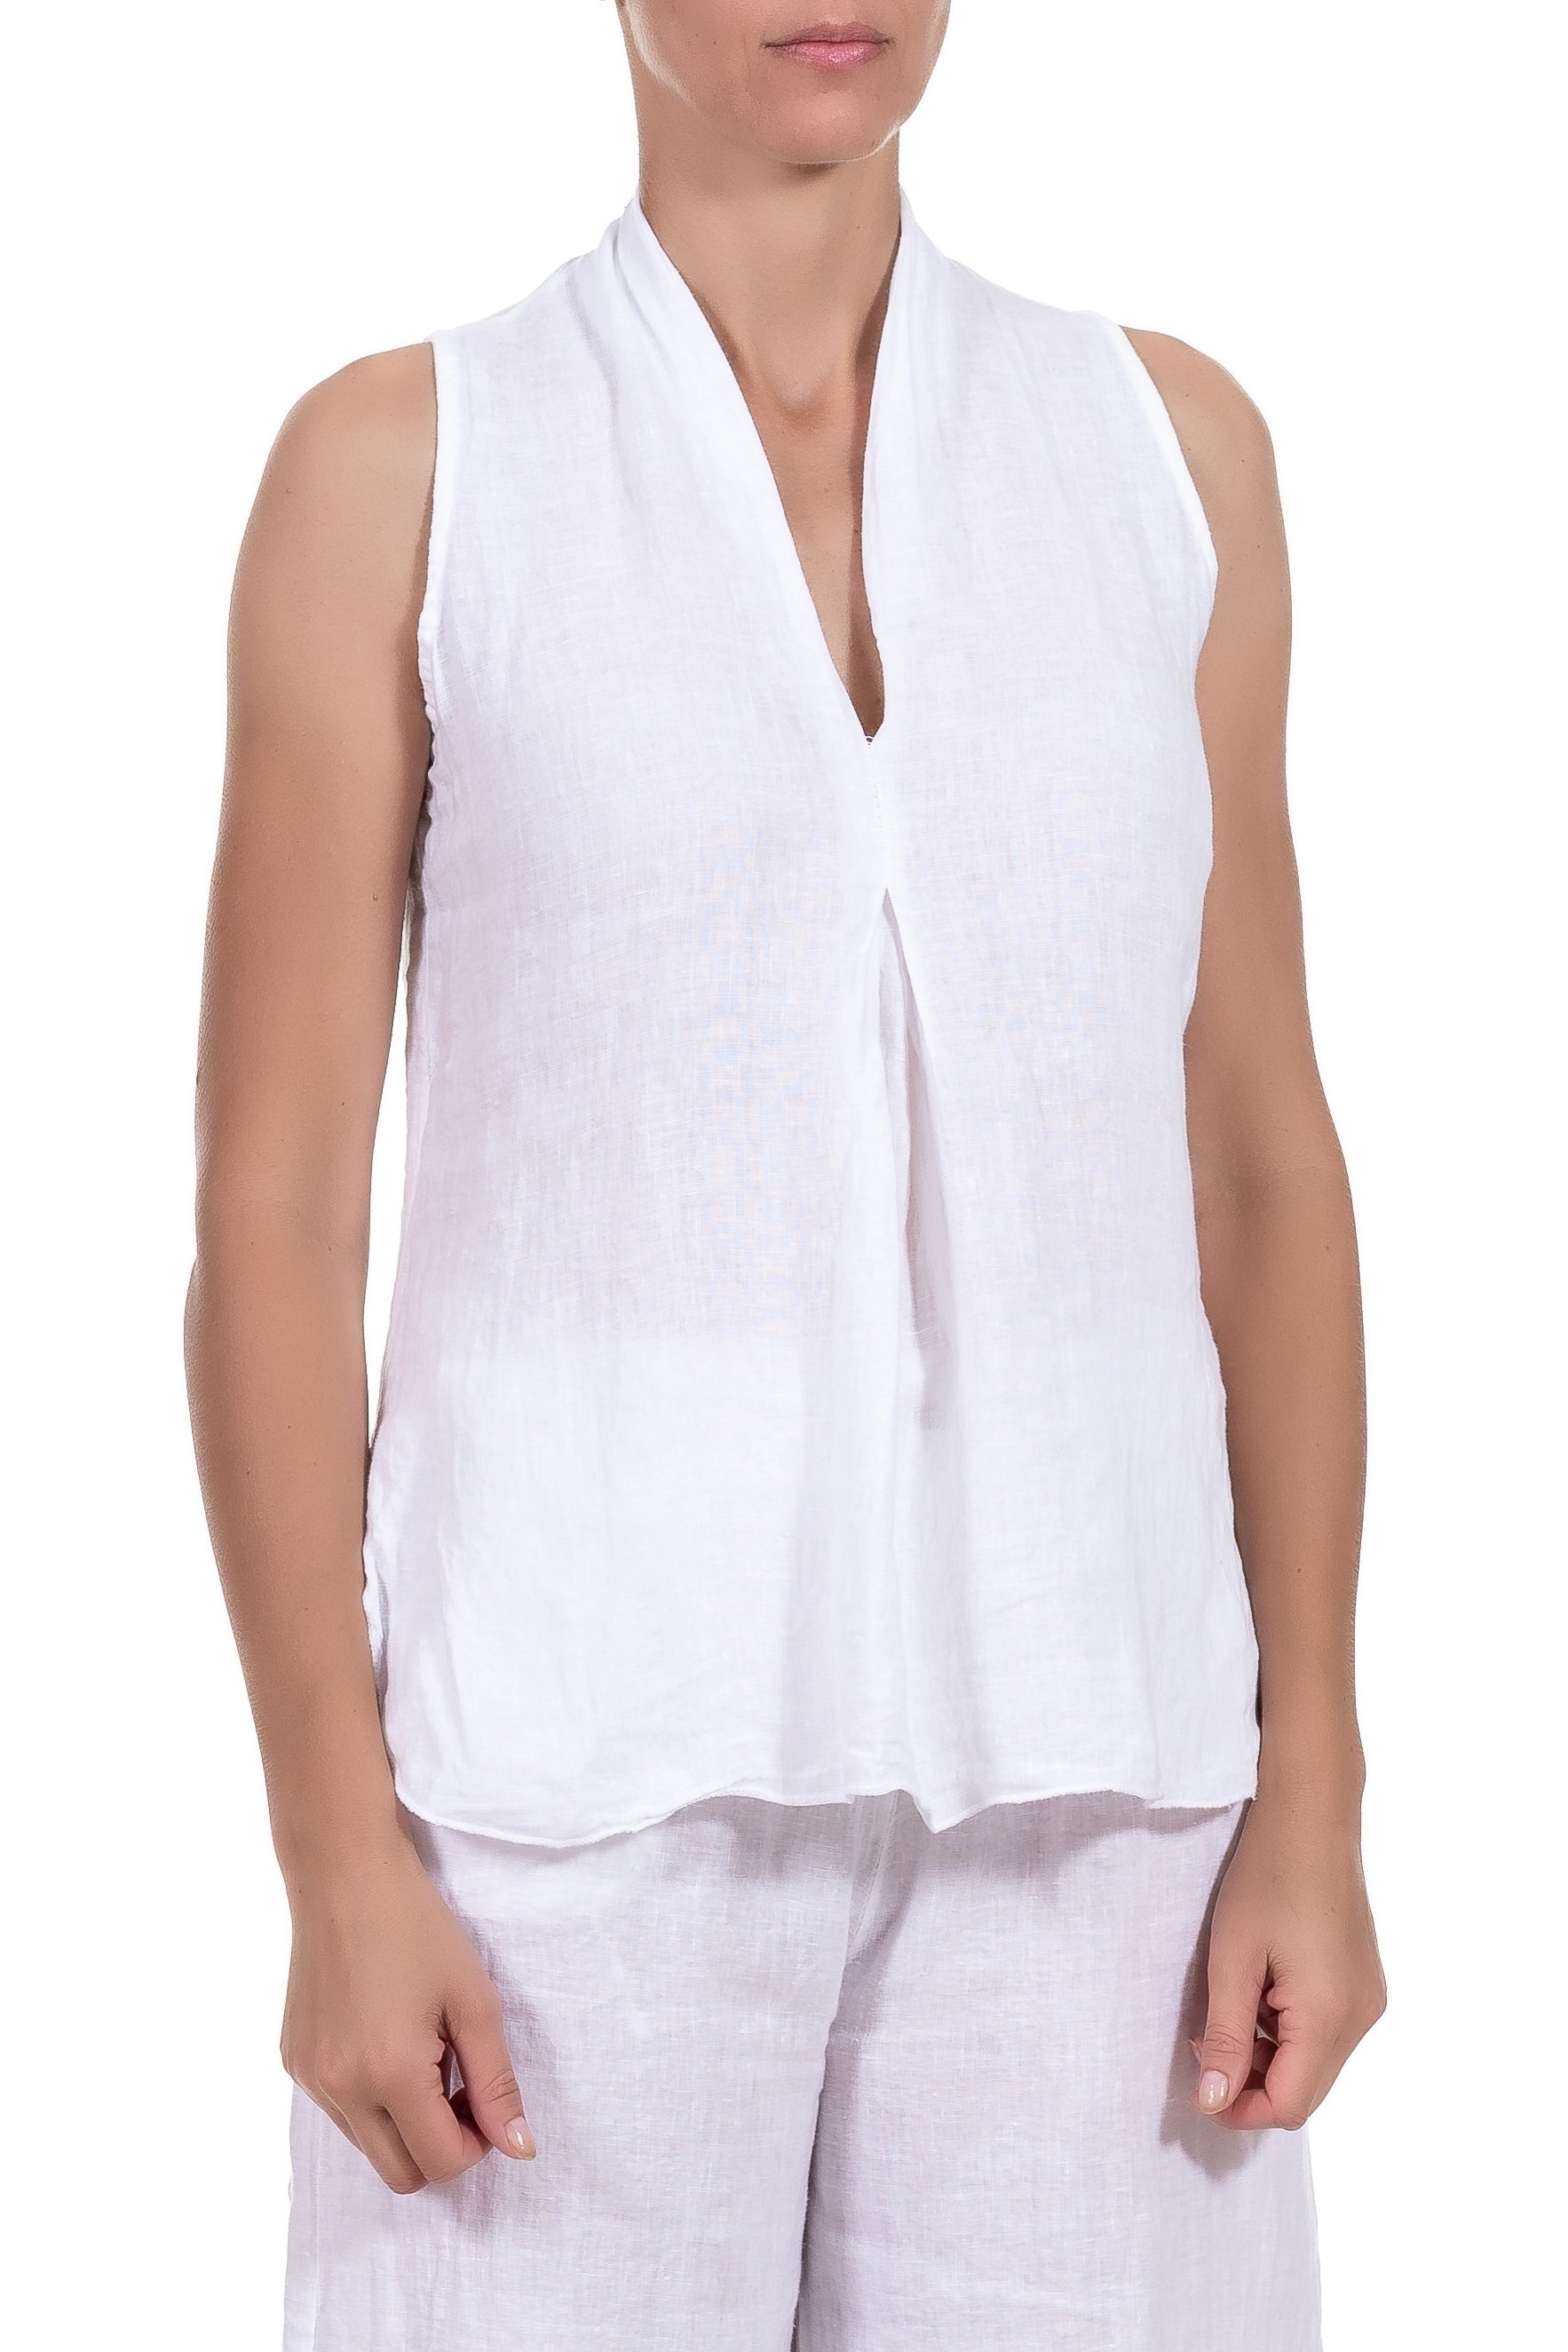 V Neck Tank, 2 colours